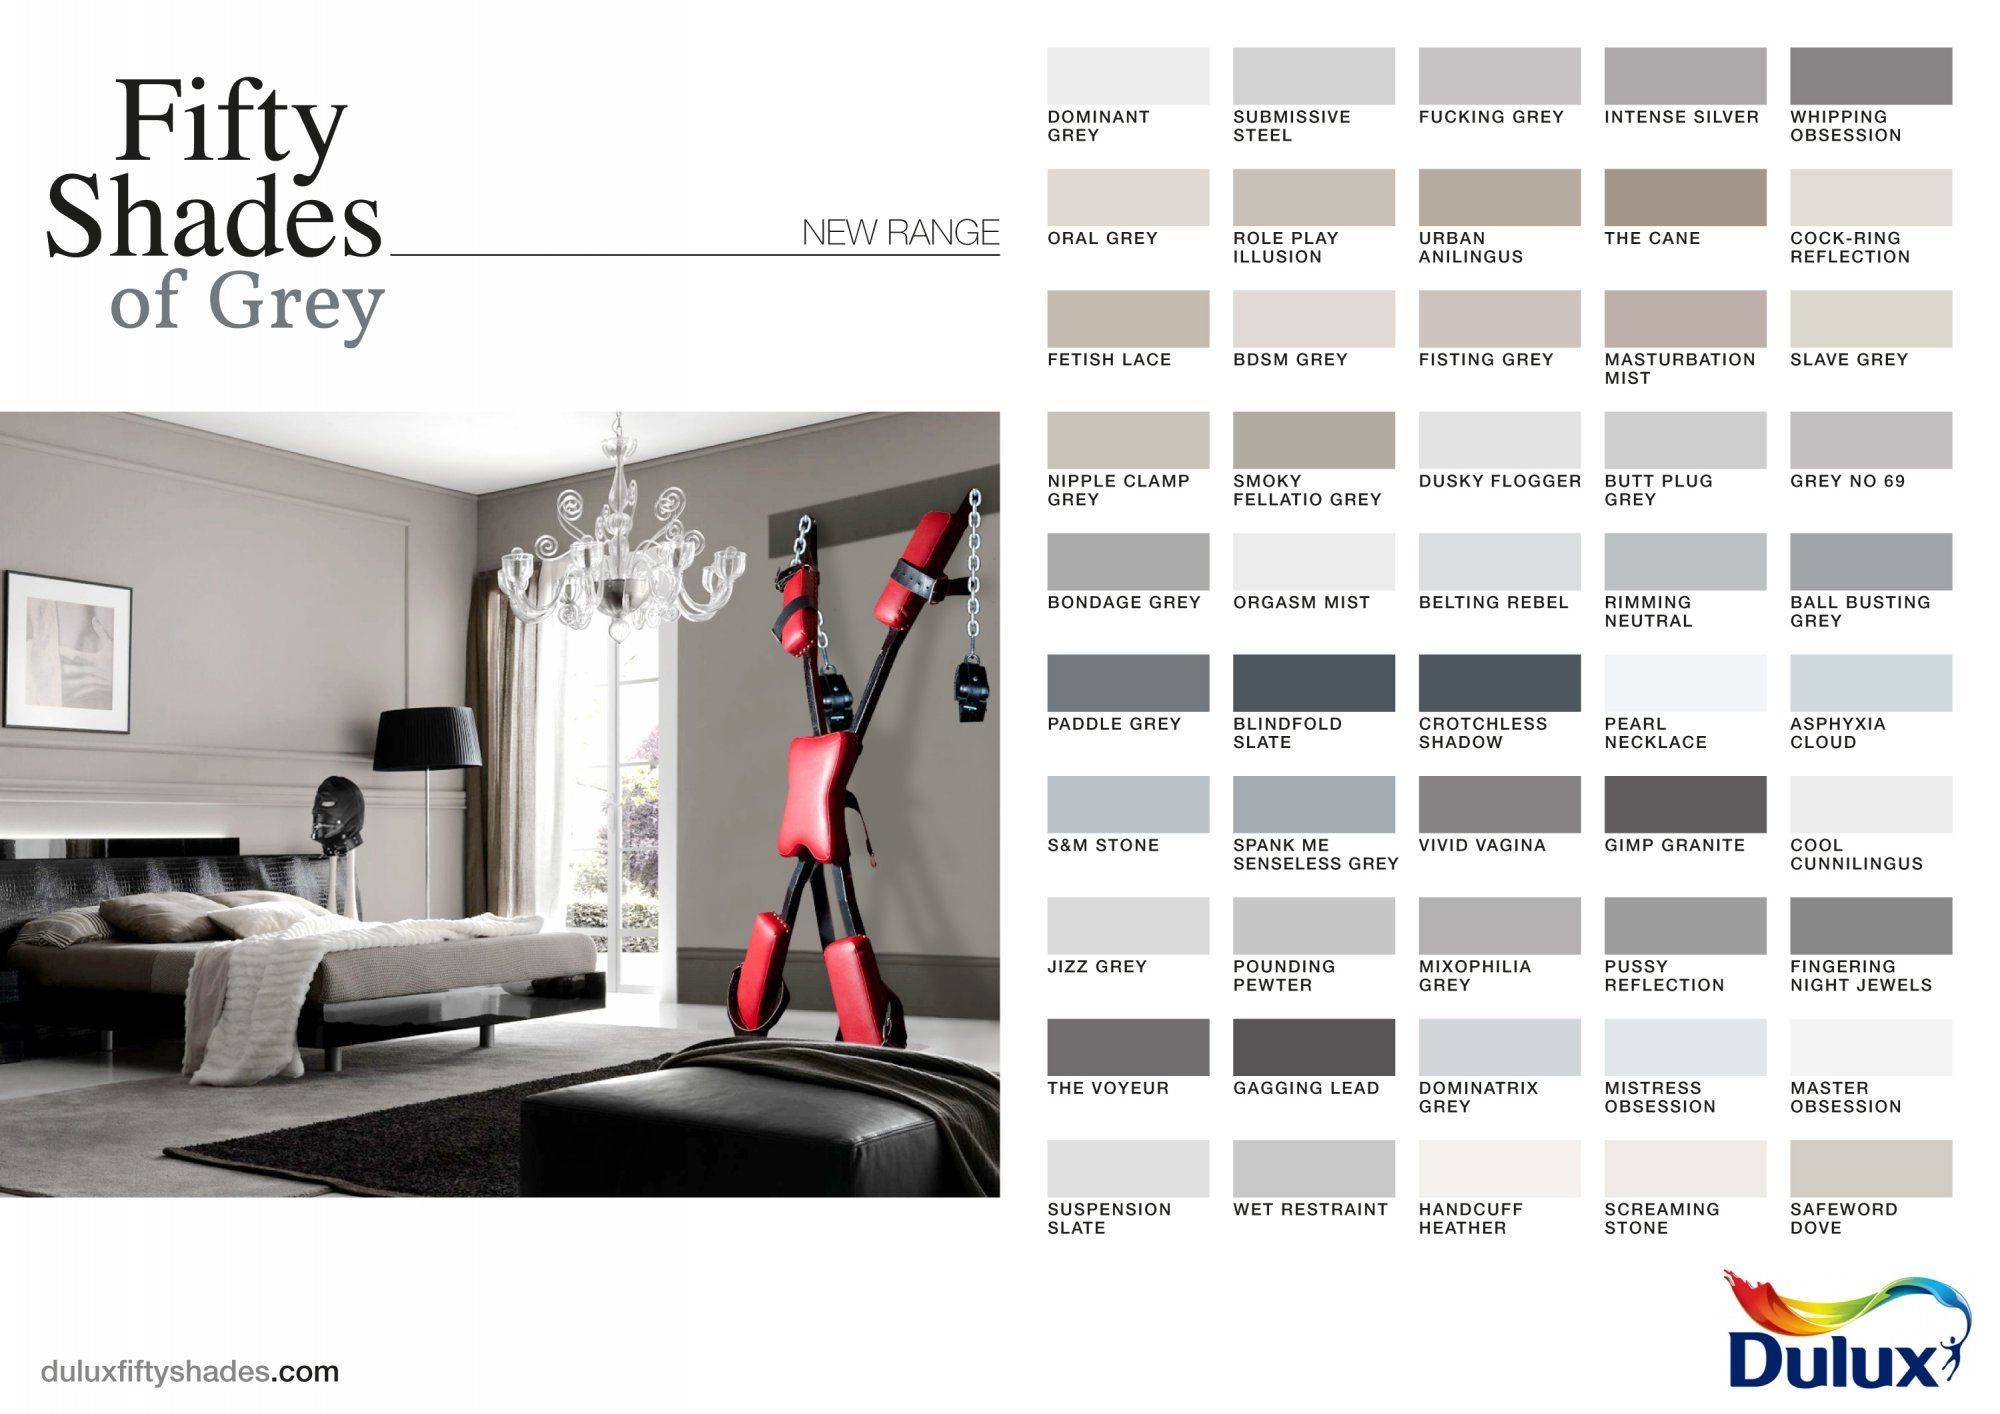 dulux shades of grey skiddaddle shades of grey dulux 50 shades of grey